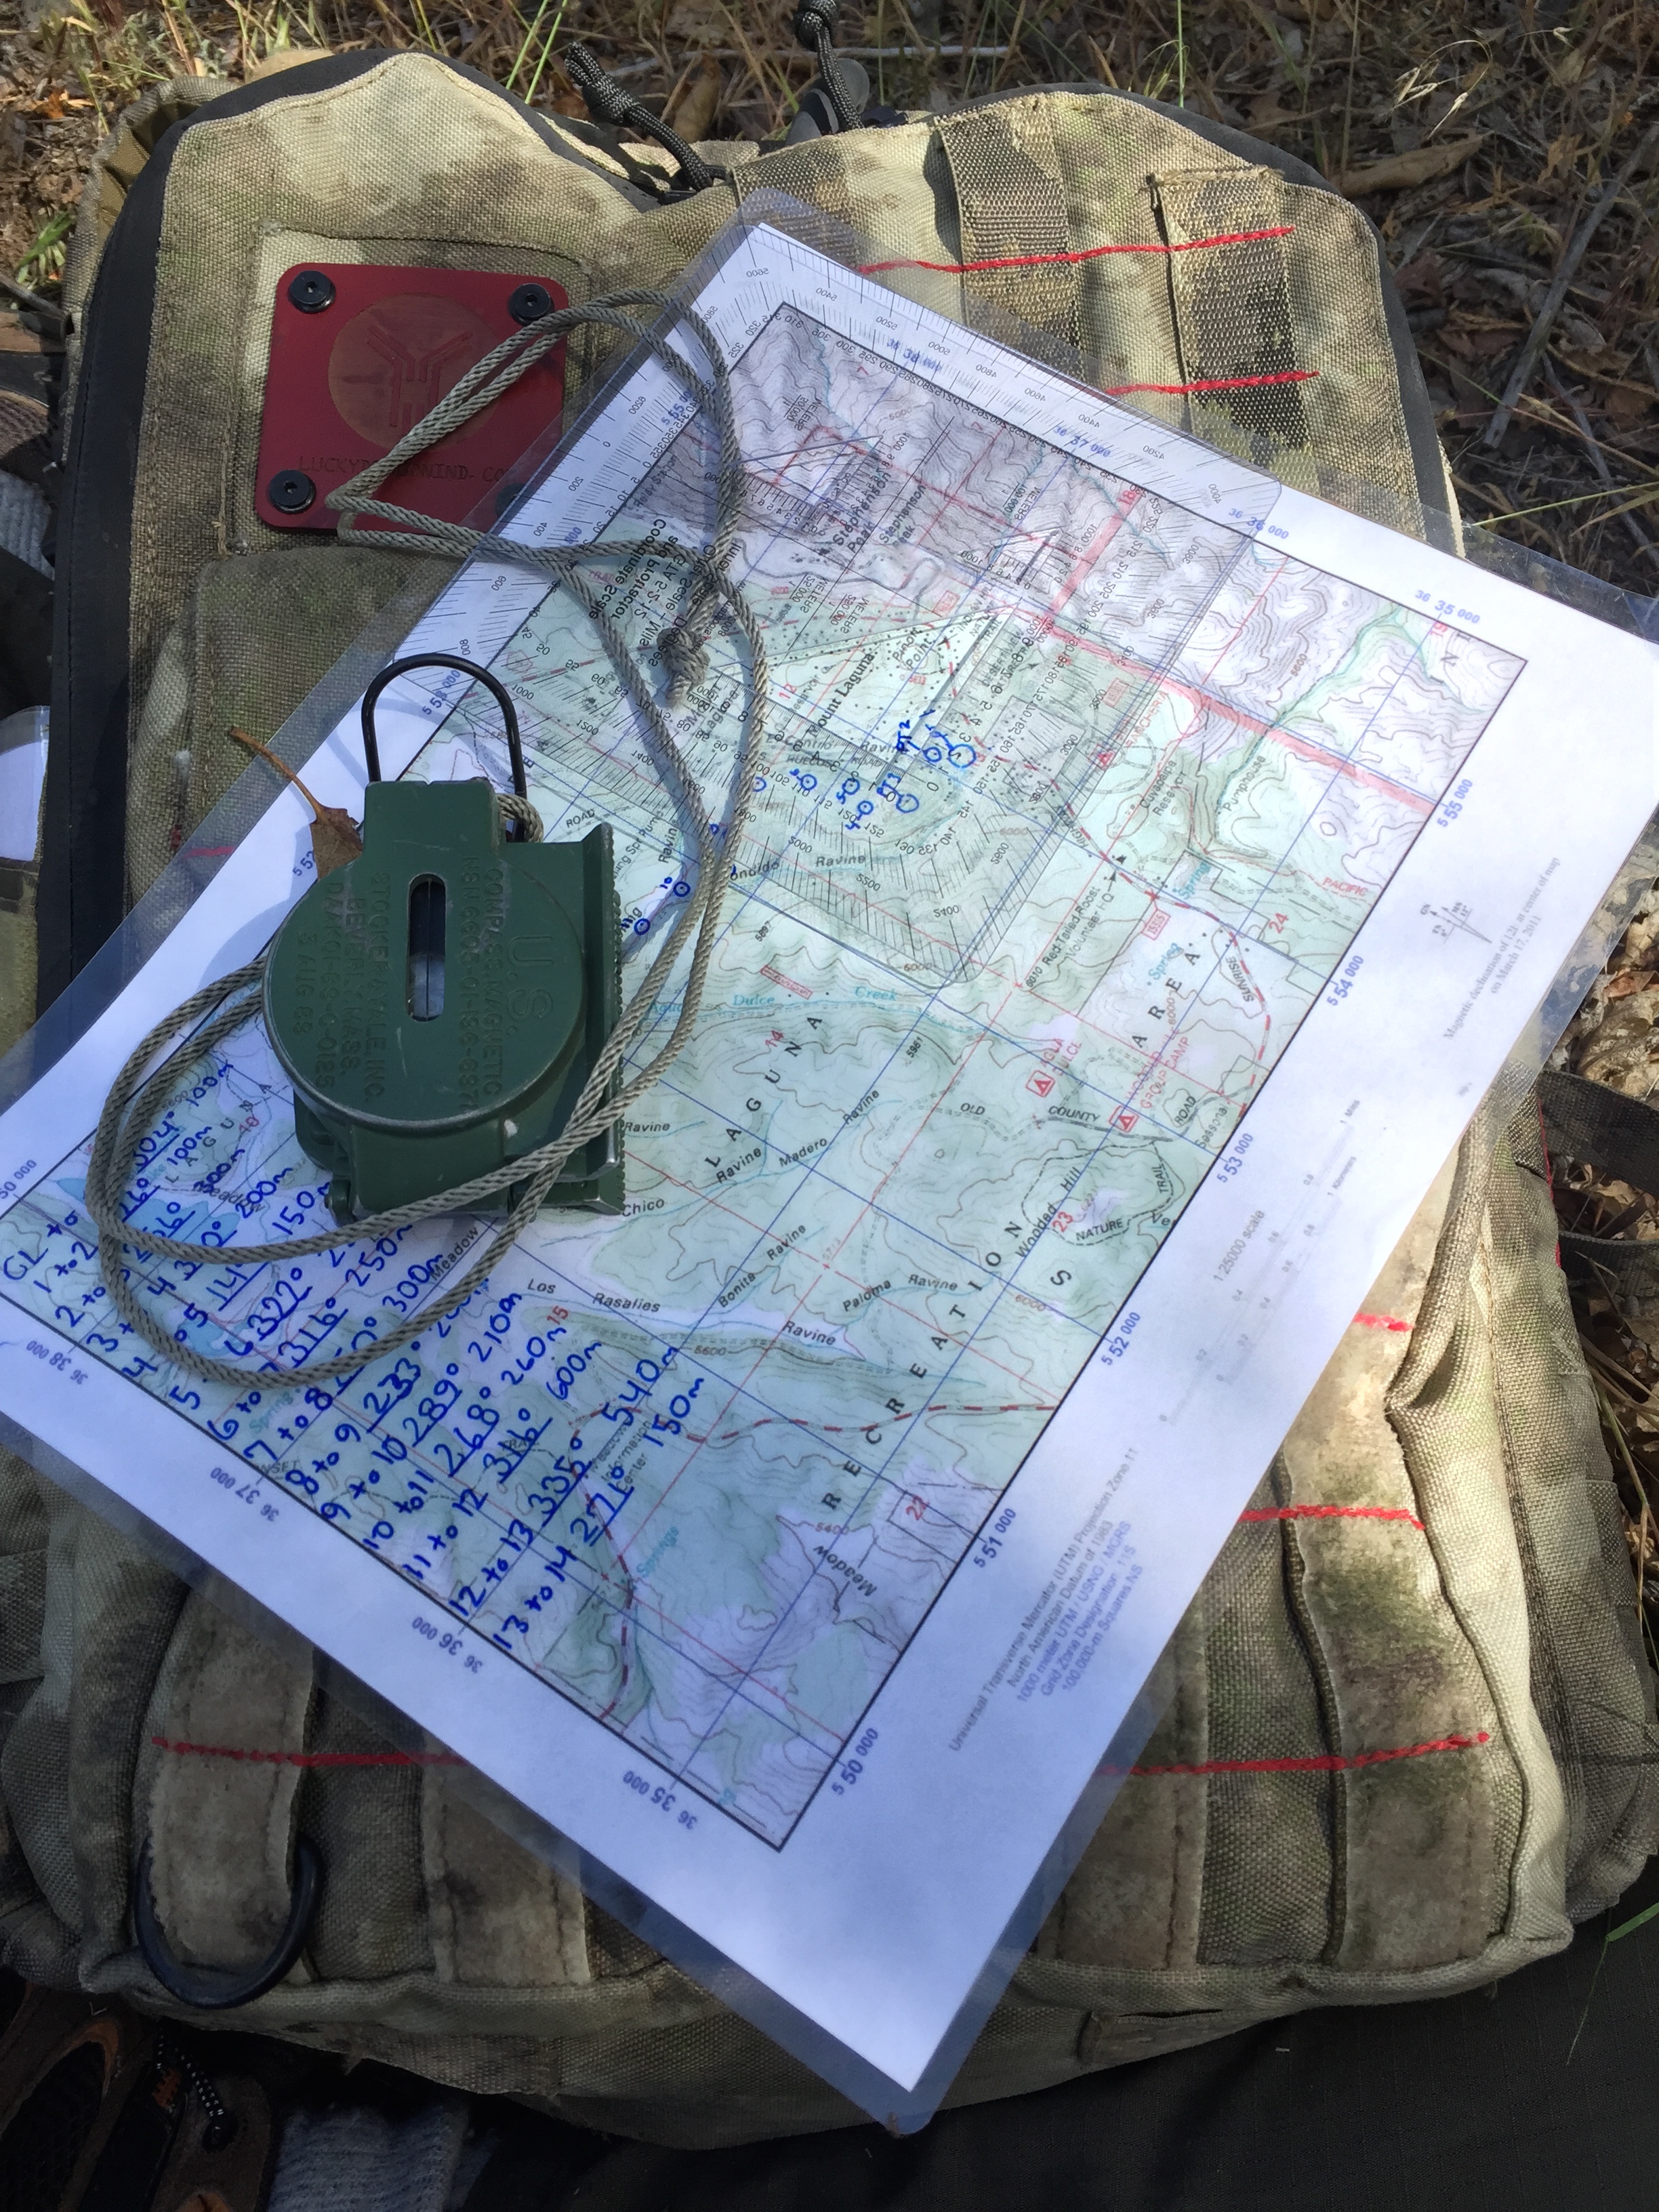 M2 lensatic compass and map for land nav